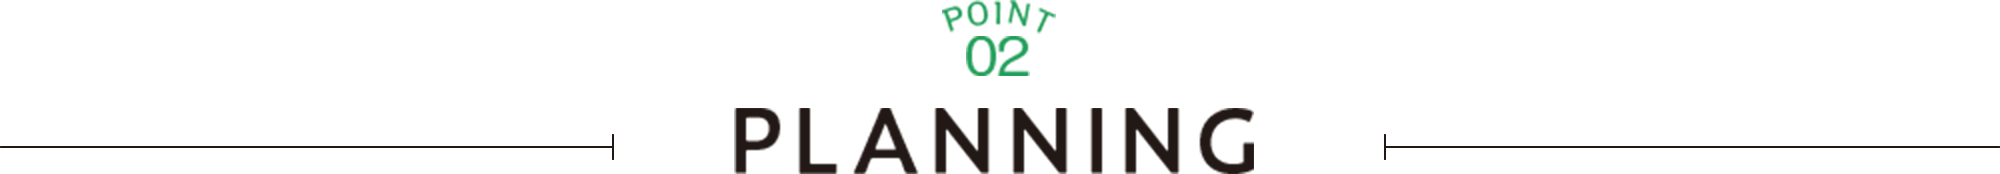 POINT02 PLANNING